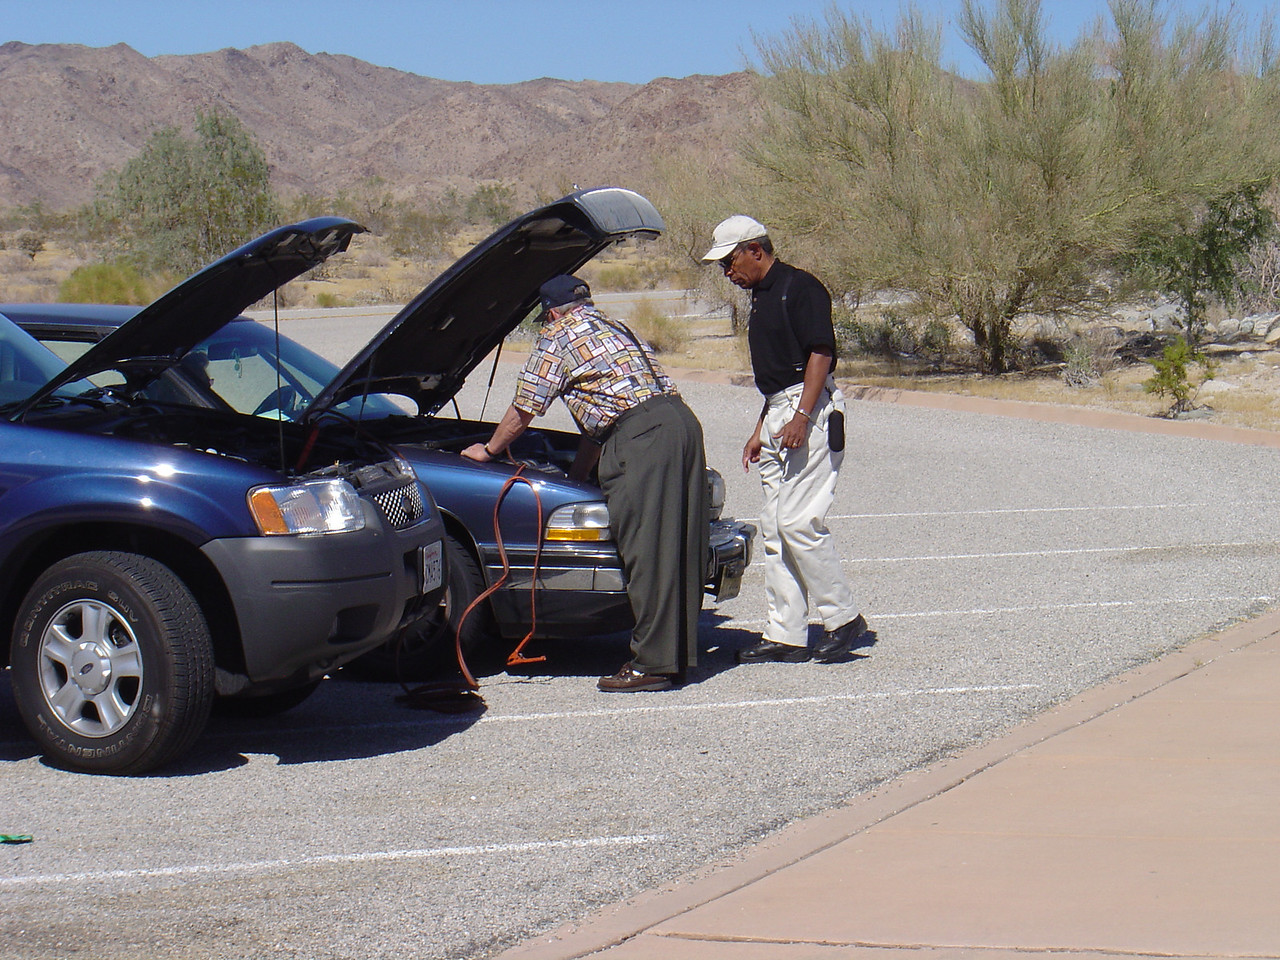 Of course no trip is complete without me helping out another visitor. This gentleman was having problems with his battery.